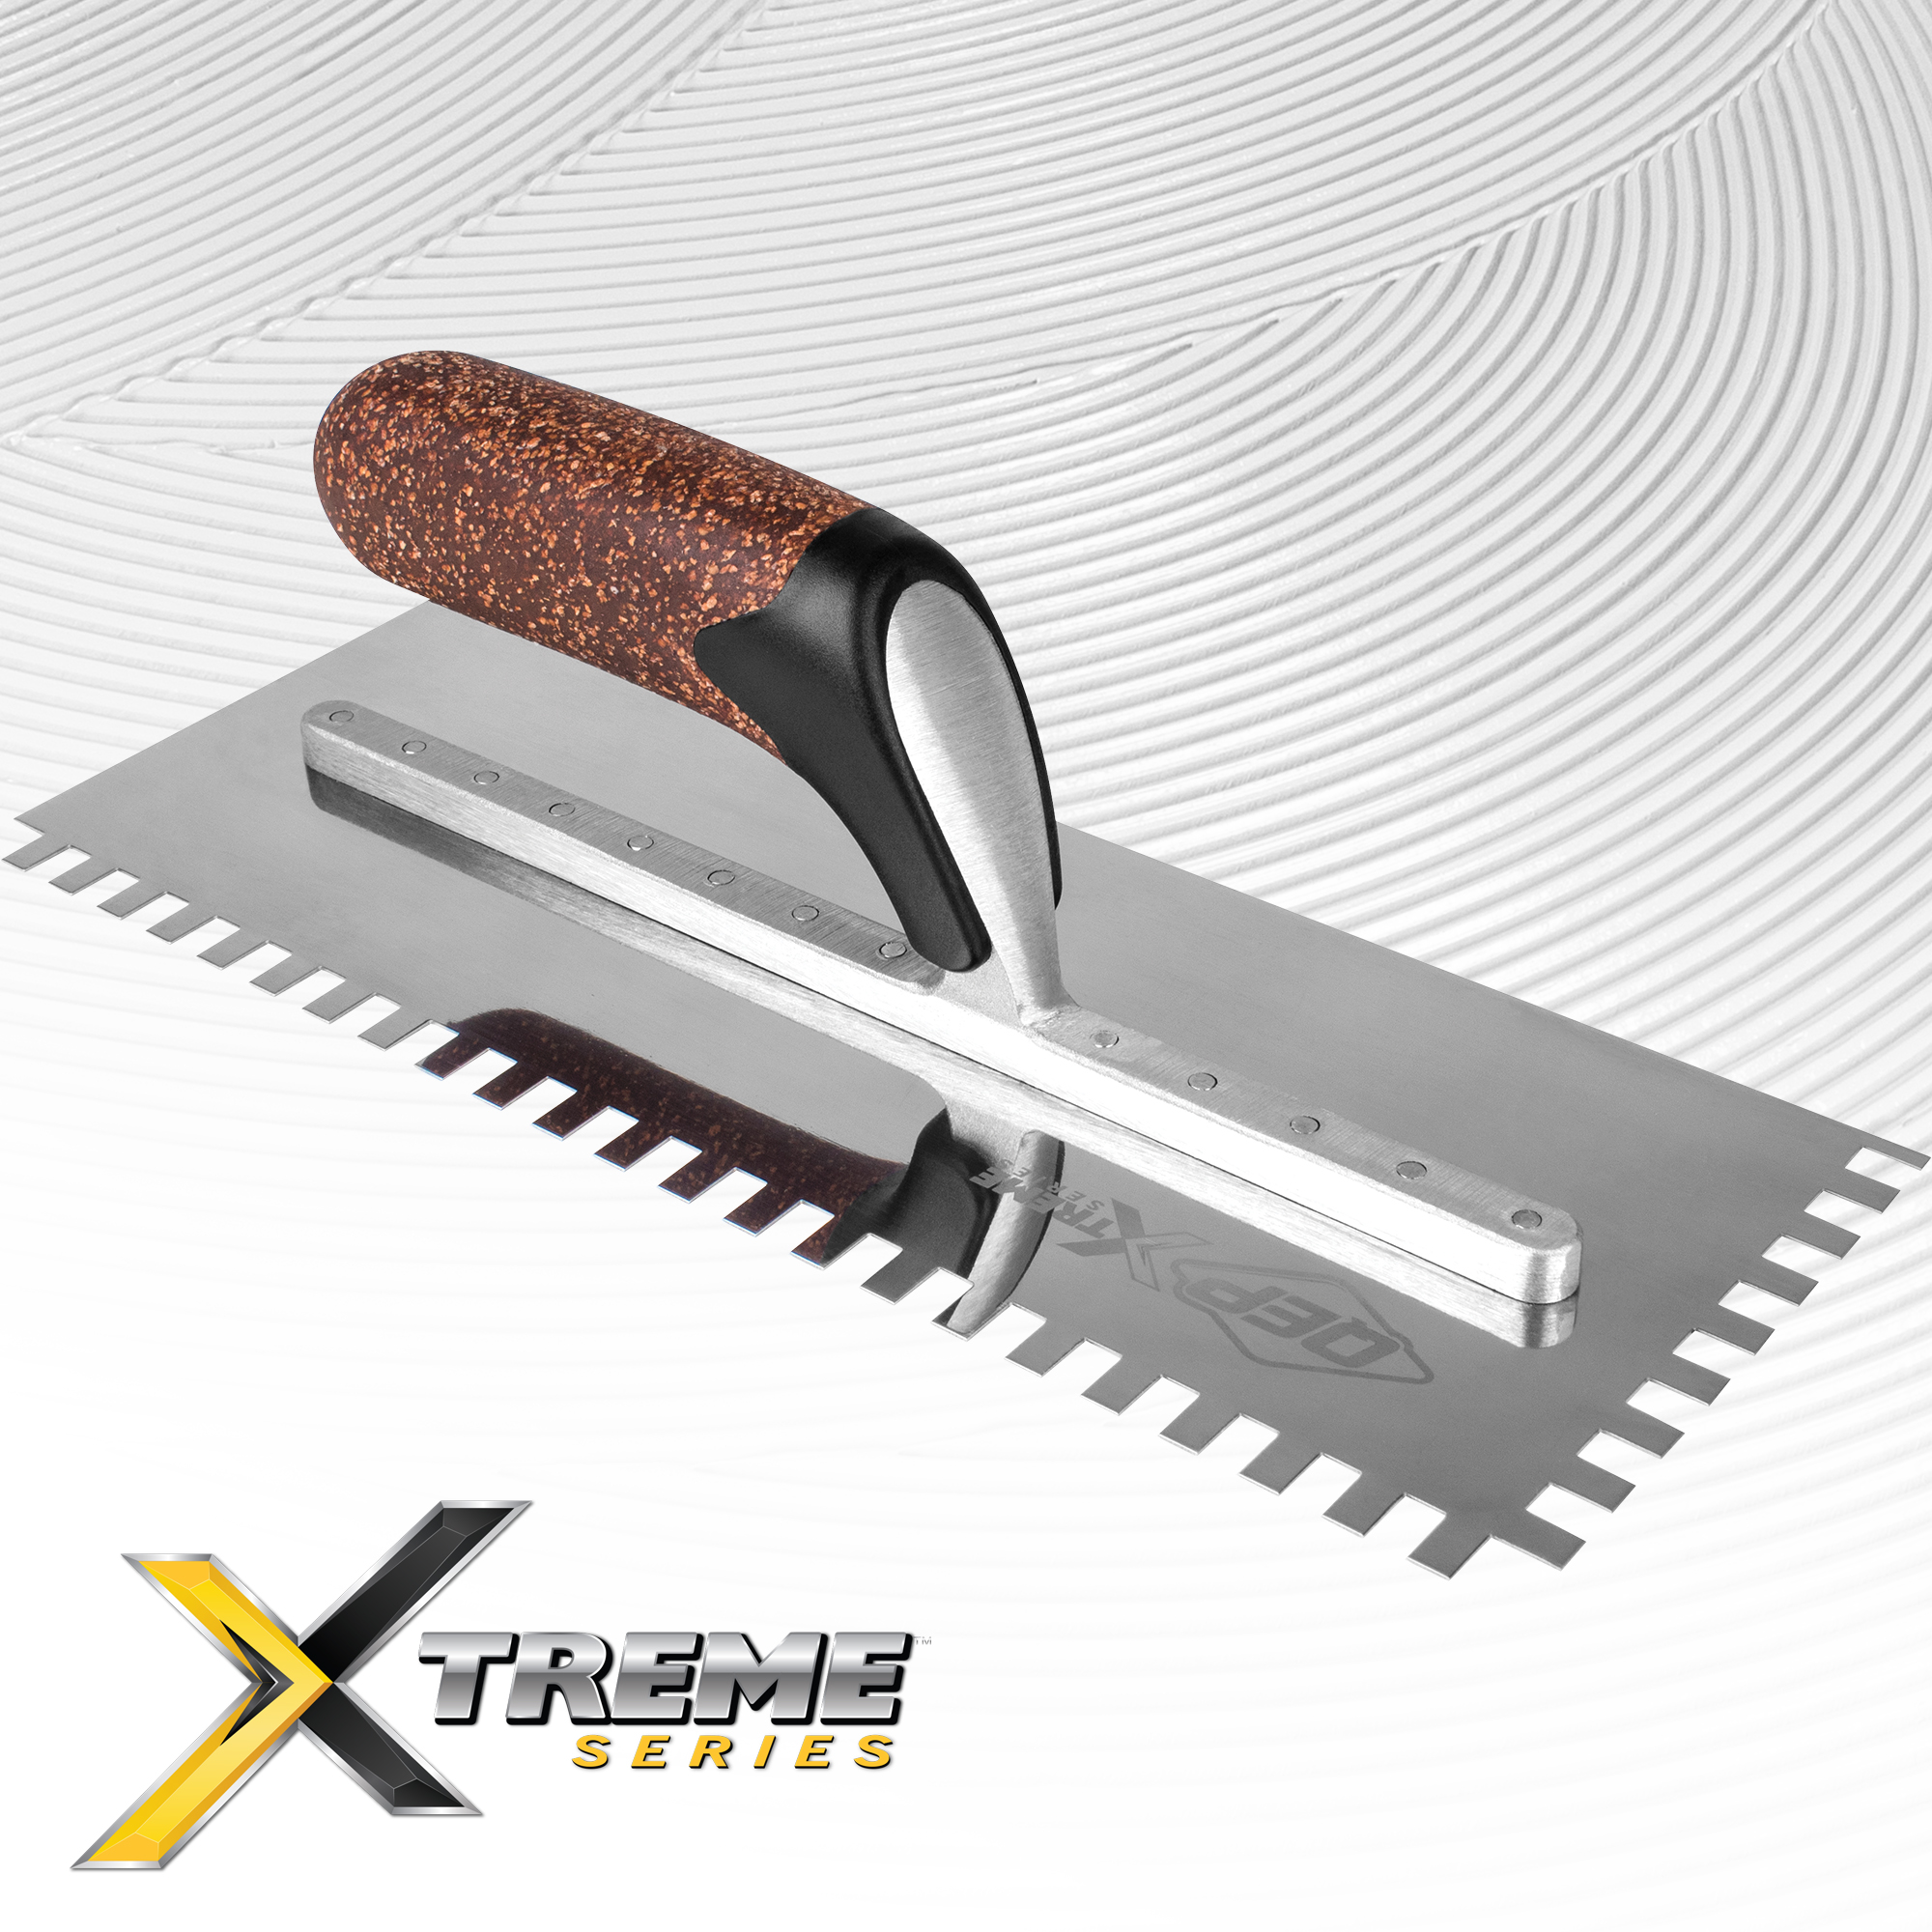 Xtreme Series Cork Handle Trowels